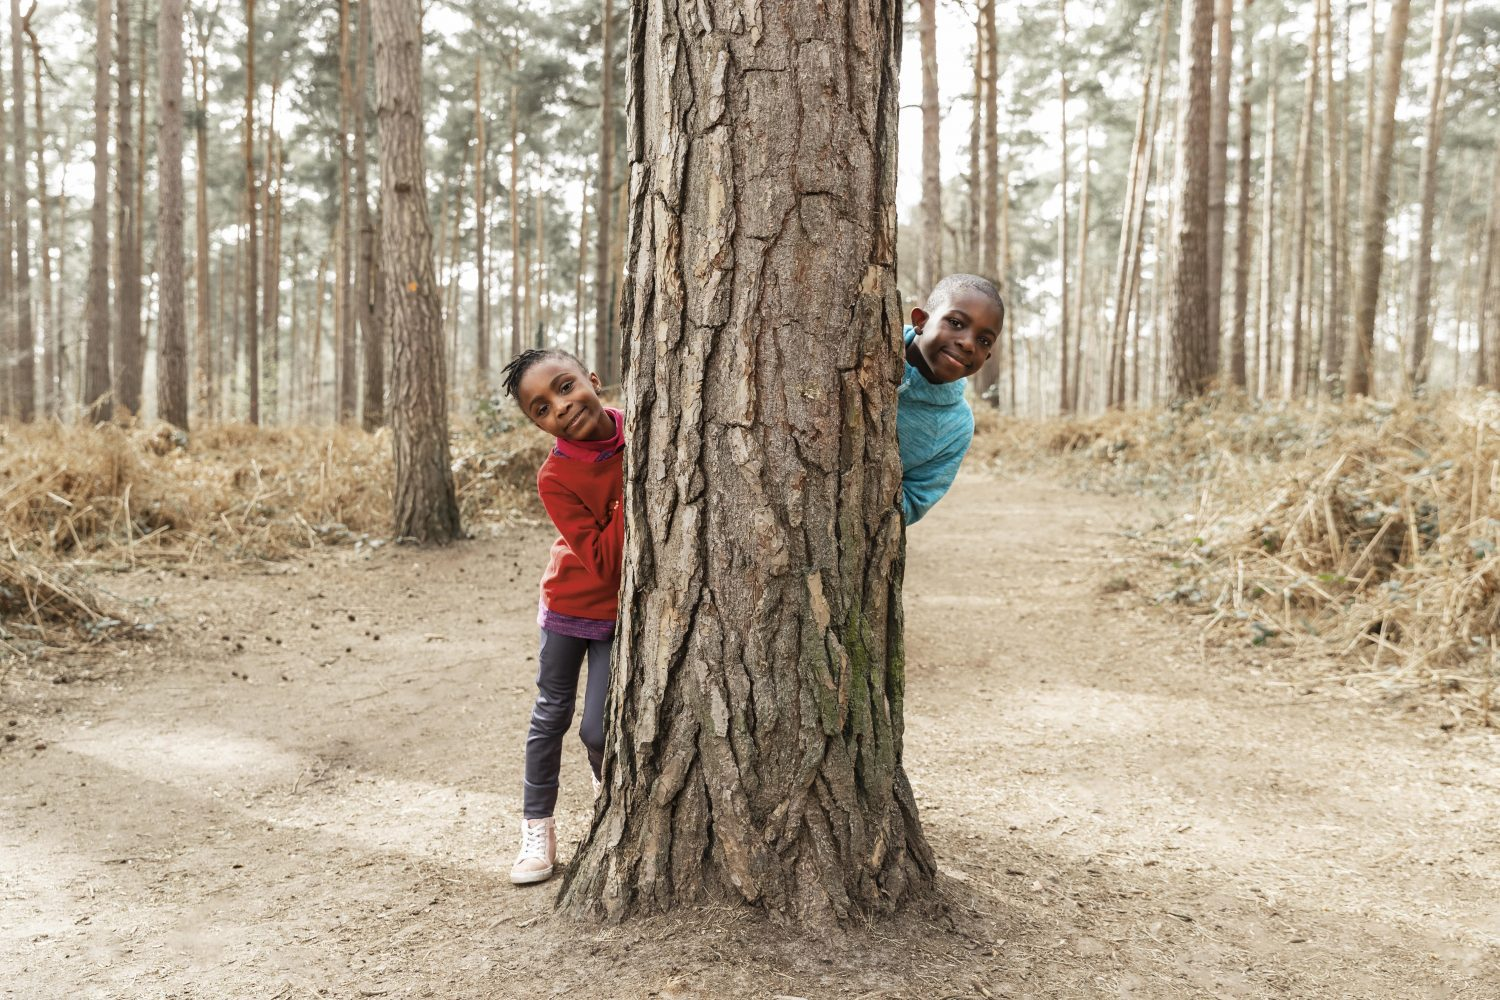 Two children peek out from behind a tree while playing hide and seek in the woods